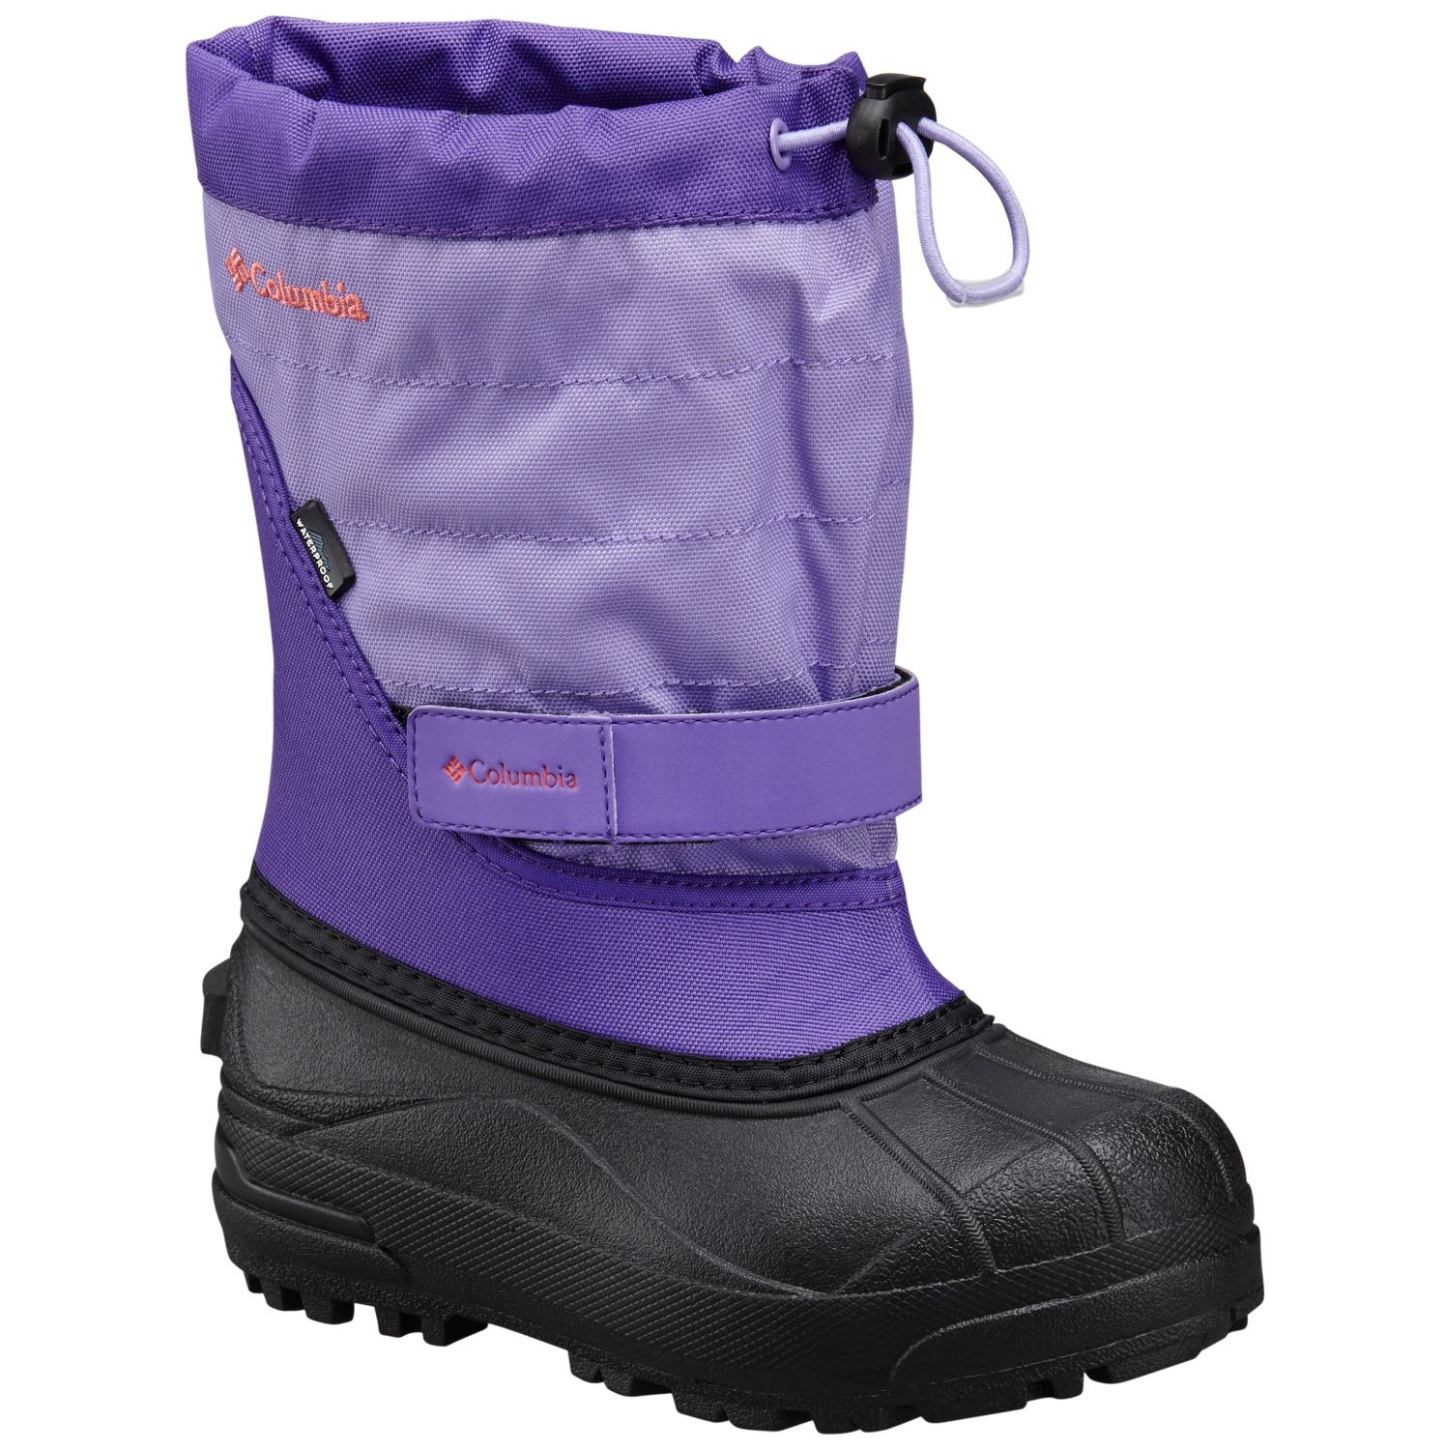 Columbia Powderbug Plus II Snow Boots Emperor, Melonade-30